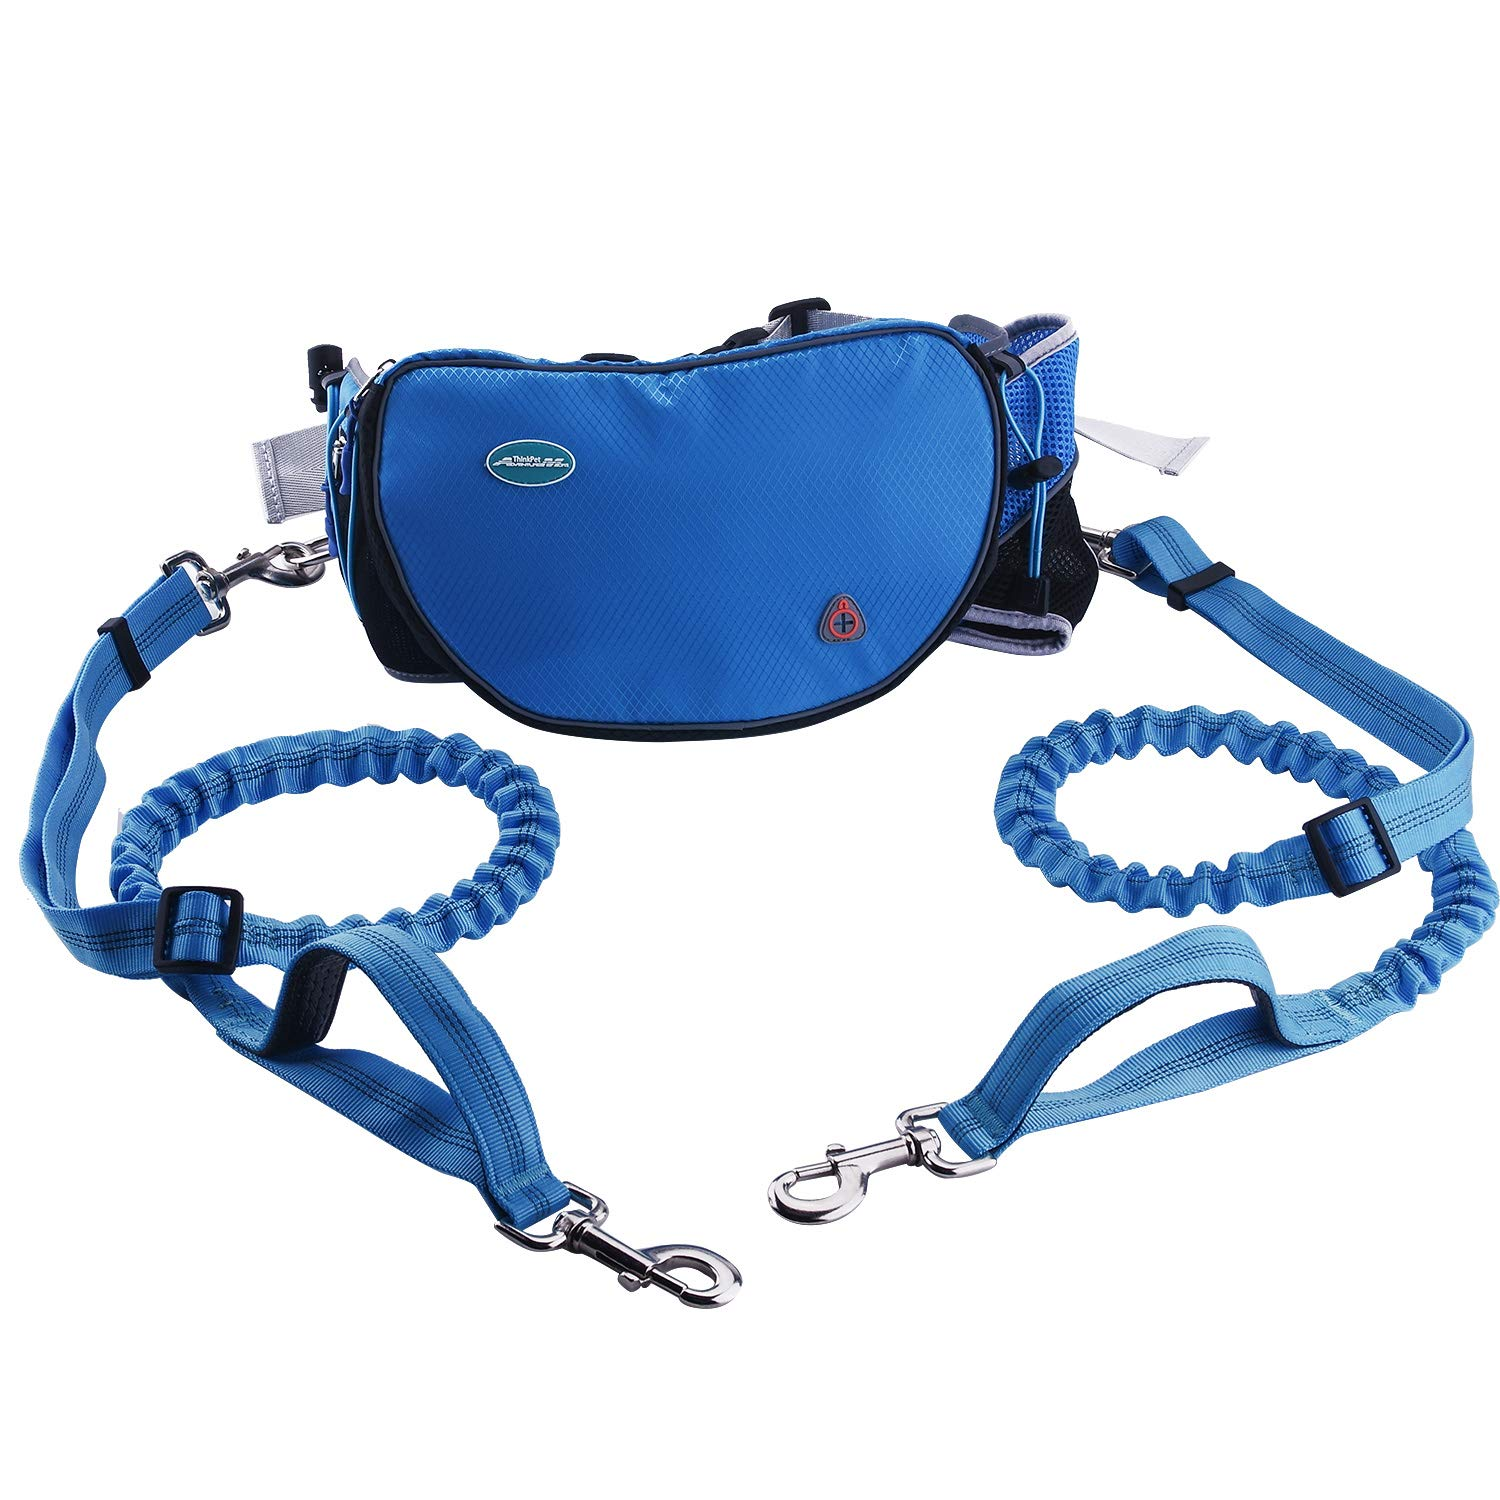 ThinkPet Hands Free Dog Leash for 2 Dogs - Shock Absorbing Bungee Leash for Medium to Large Dogs, Adjustable Waist Belt from 25.6'' to 49'', Dog Treat Pouch & Bottle Holder